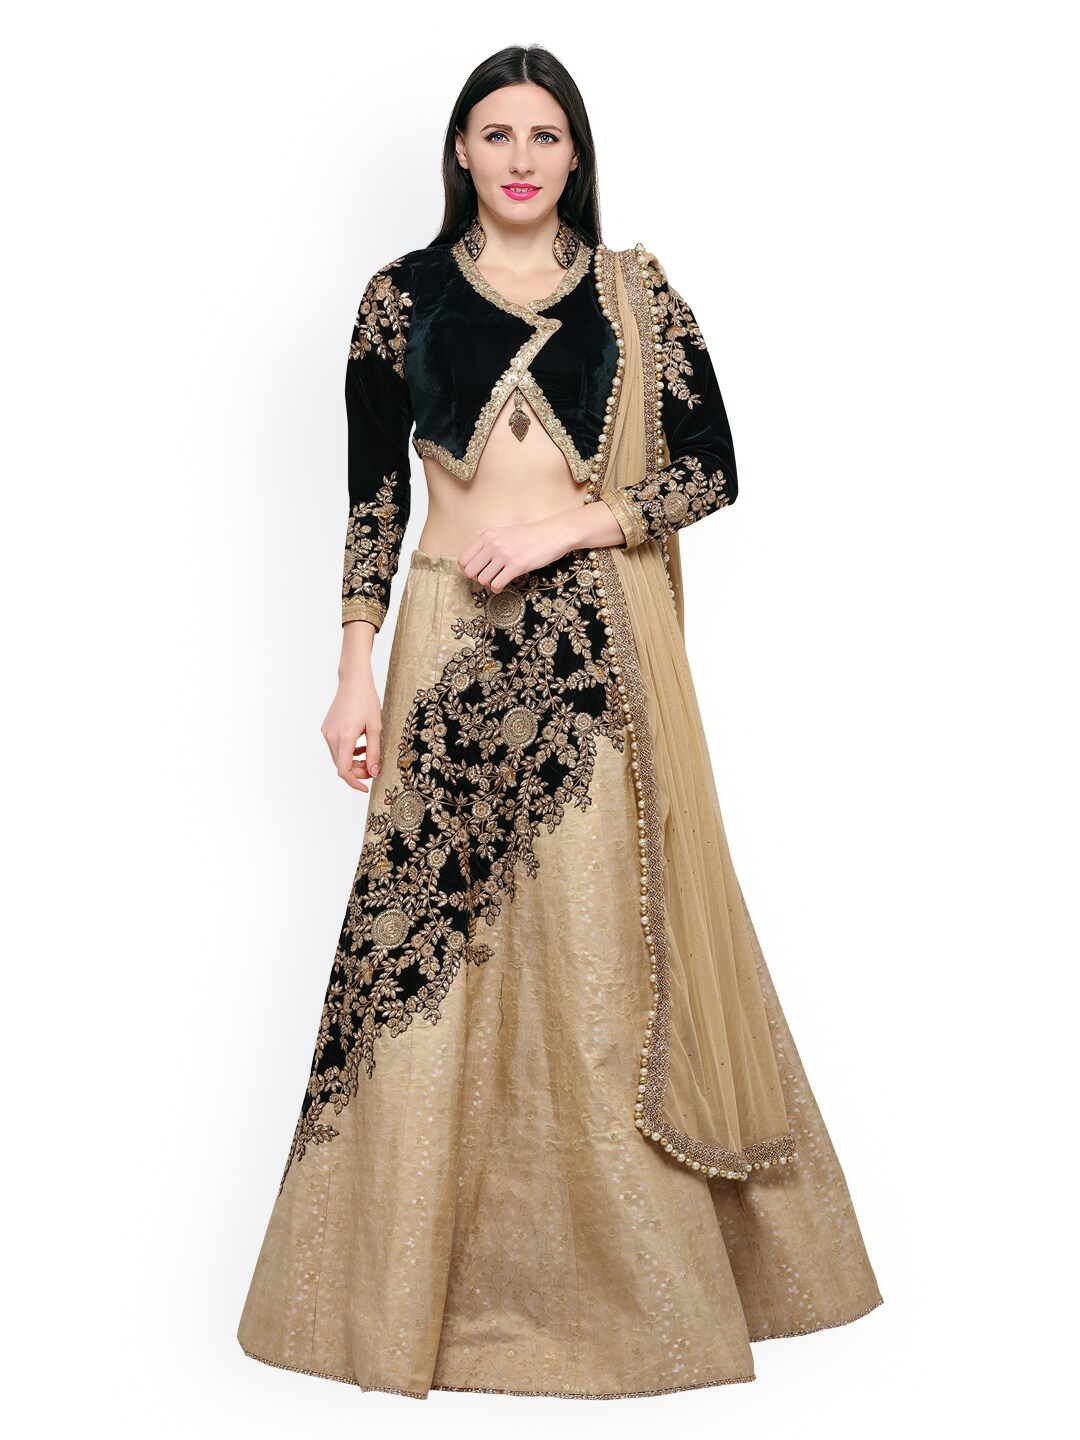 Riya Beige and Olive Green Jacquard and Velvet Embroidered Lehenga with Velvet Un-stitched choli and Net Dupatta image